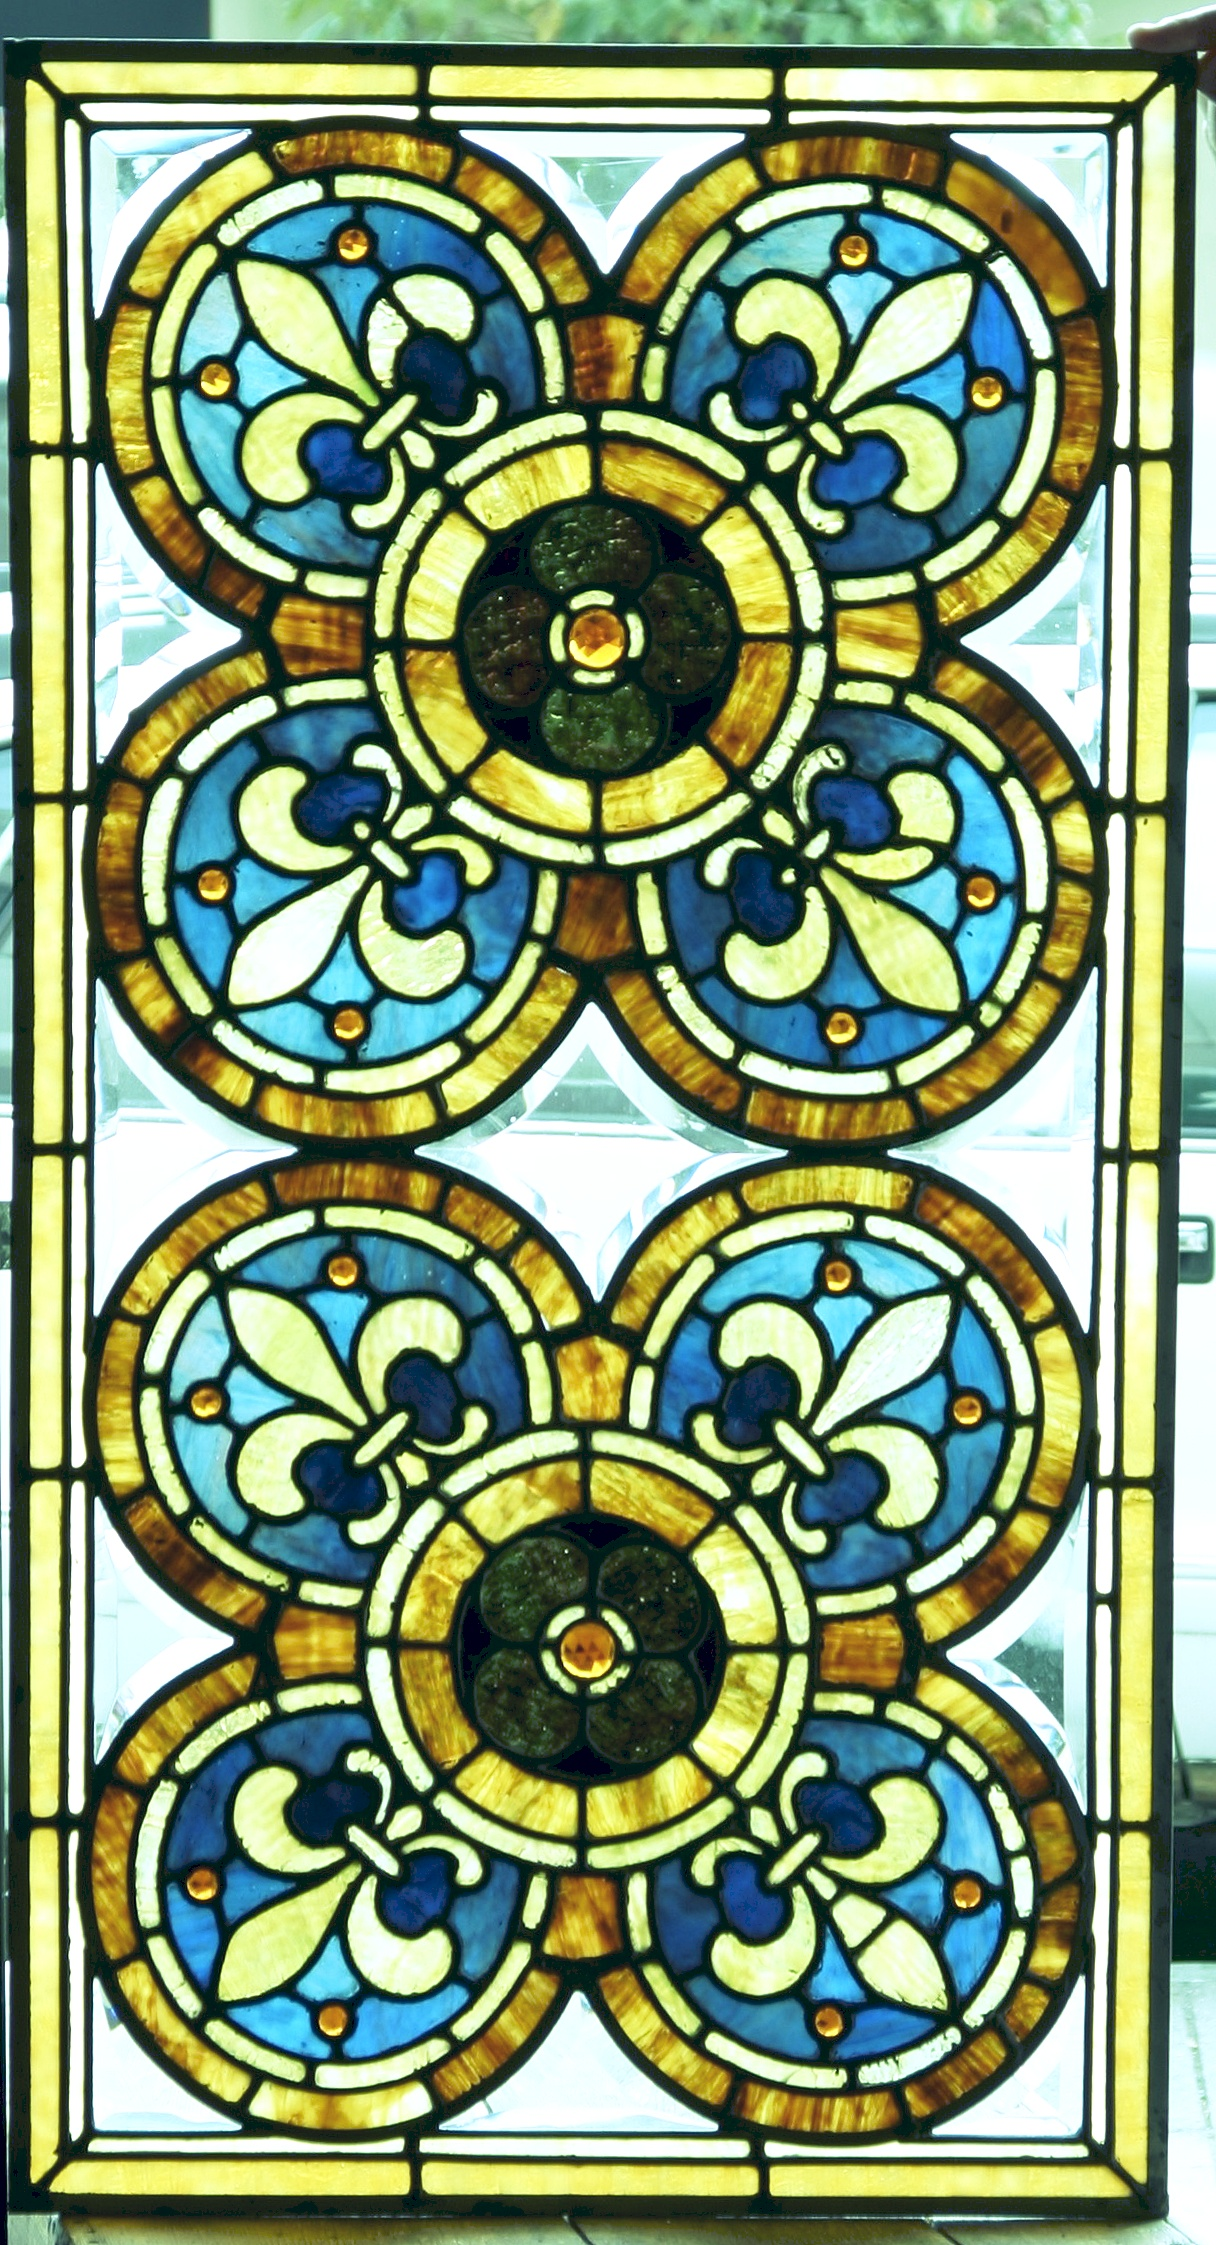 Art nouveau stained glass my blog for Window design art